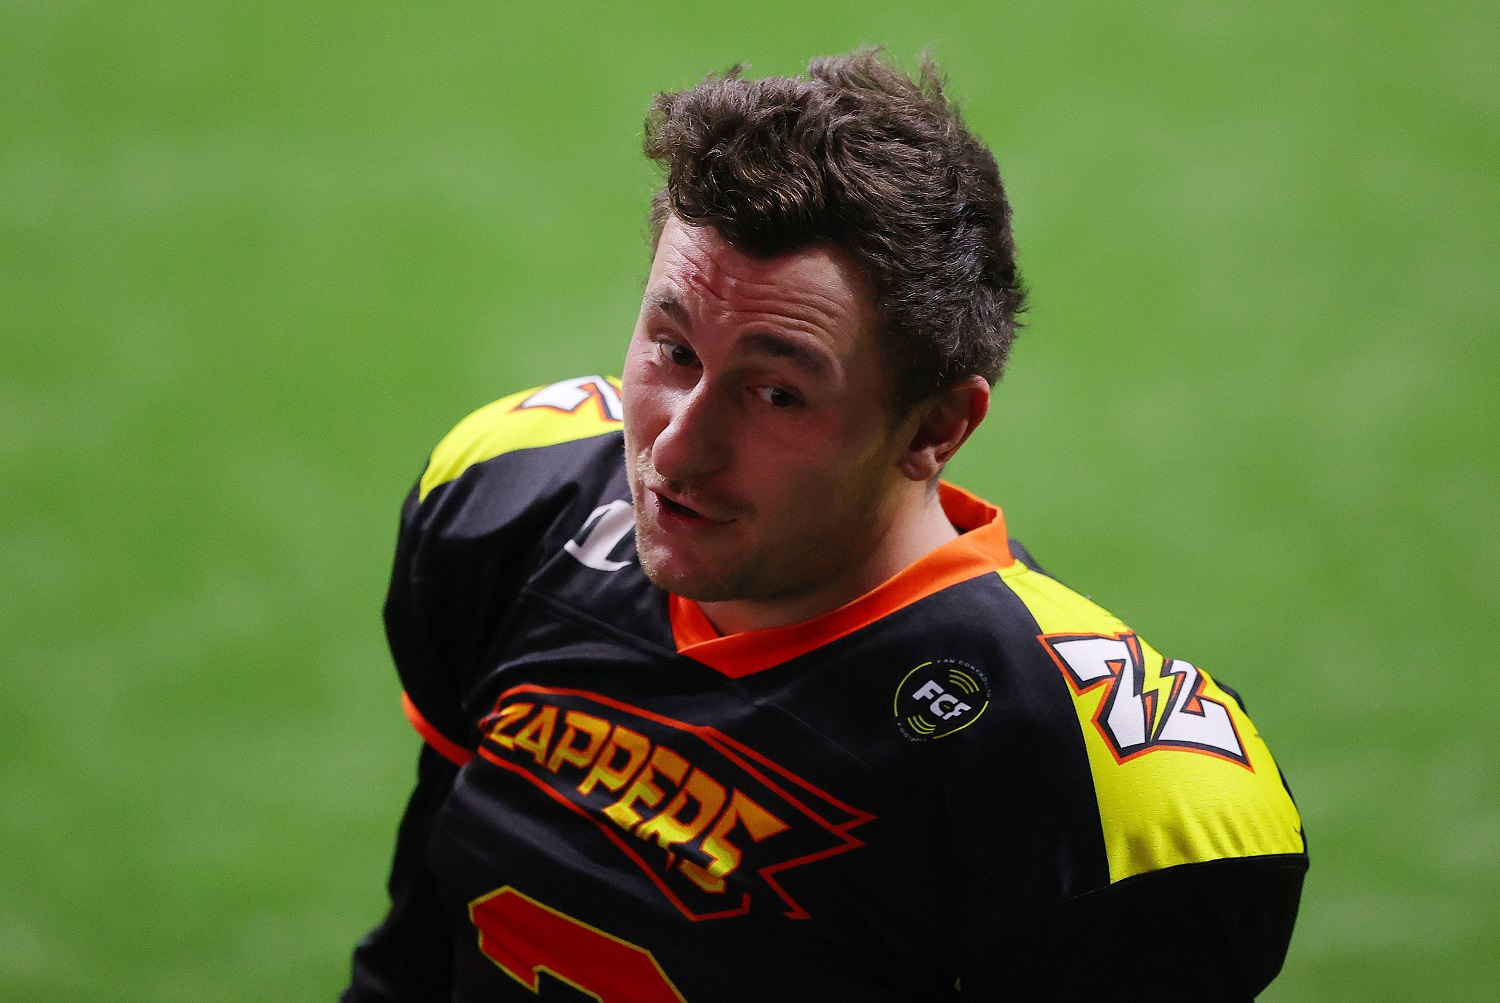 Johnny Manziel of the Zappers warms up before a Fan Controlled Football game at Infinite Energy Arena on Feb. 20, 2021, in Duluth, Georgia. | Kevin C. Cox/Fan Controlled Football/Getty Images